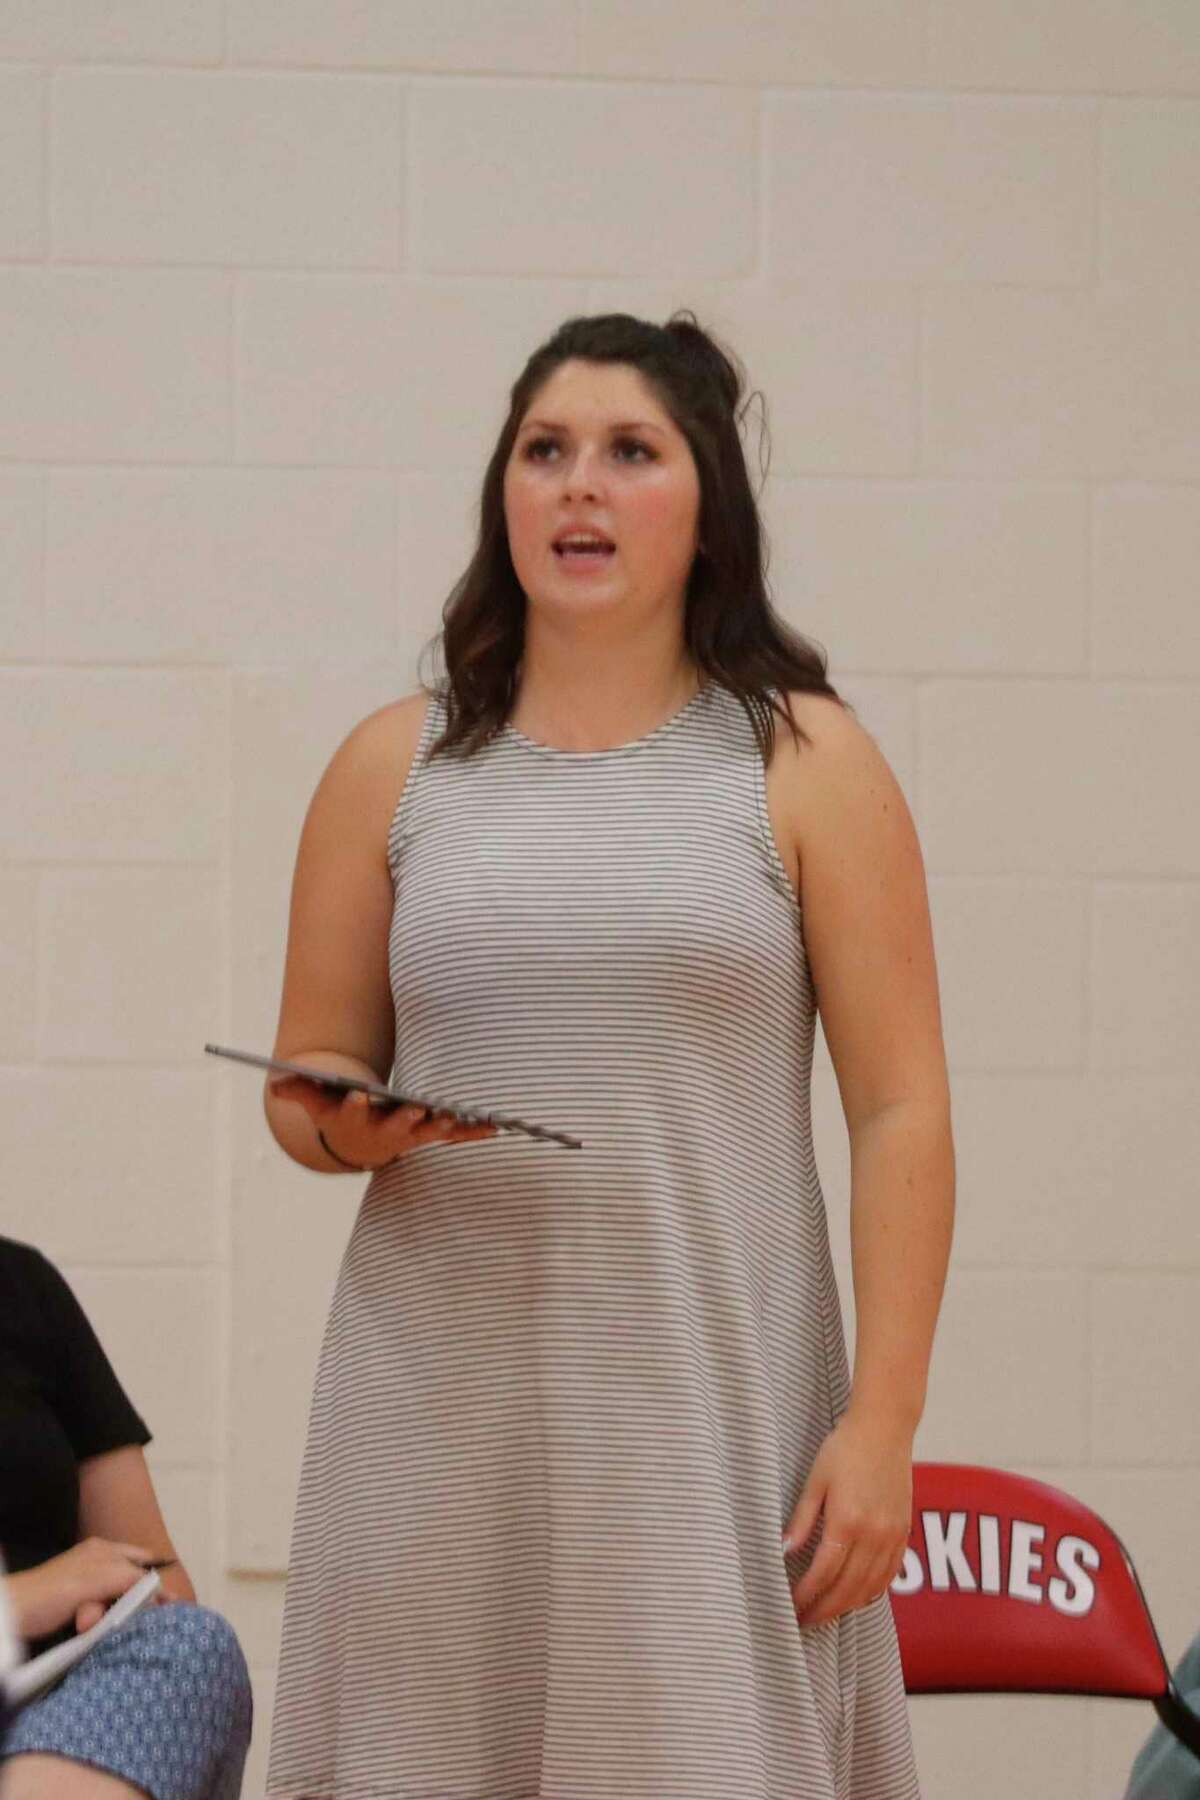 Brooke Richards coaches Manistee during a match at Benzie Central on Aug. 28. (News Advocate file photo)